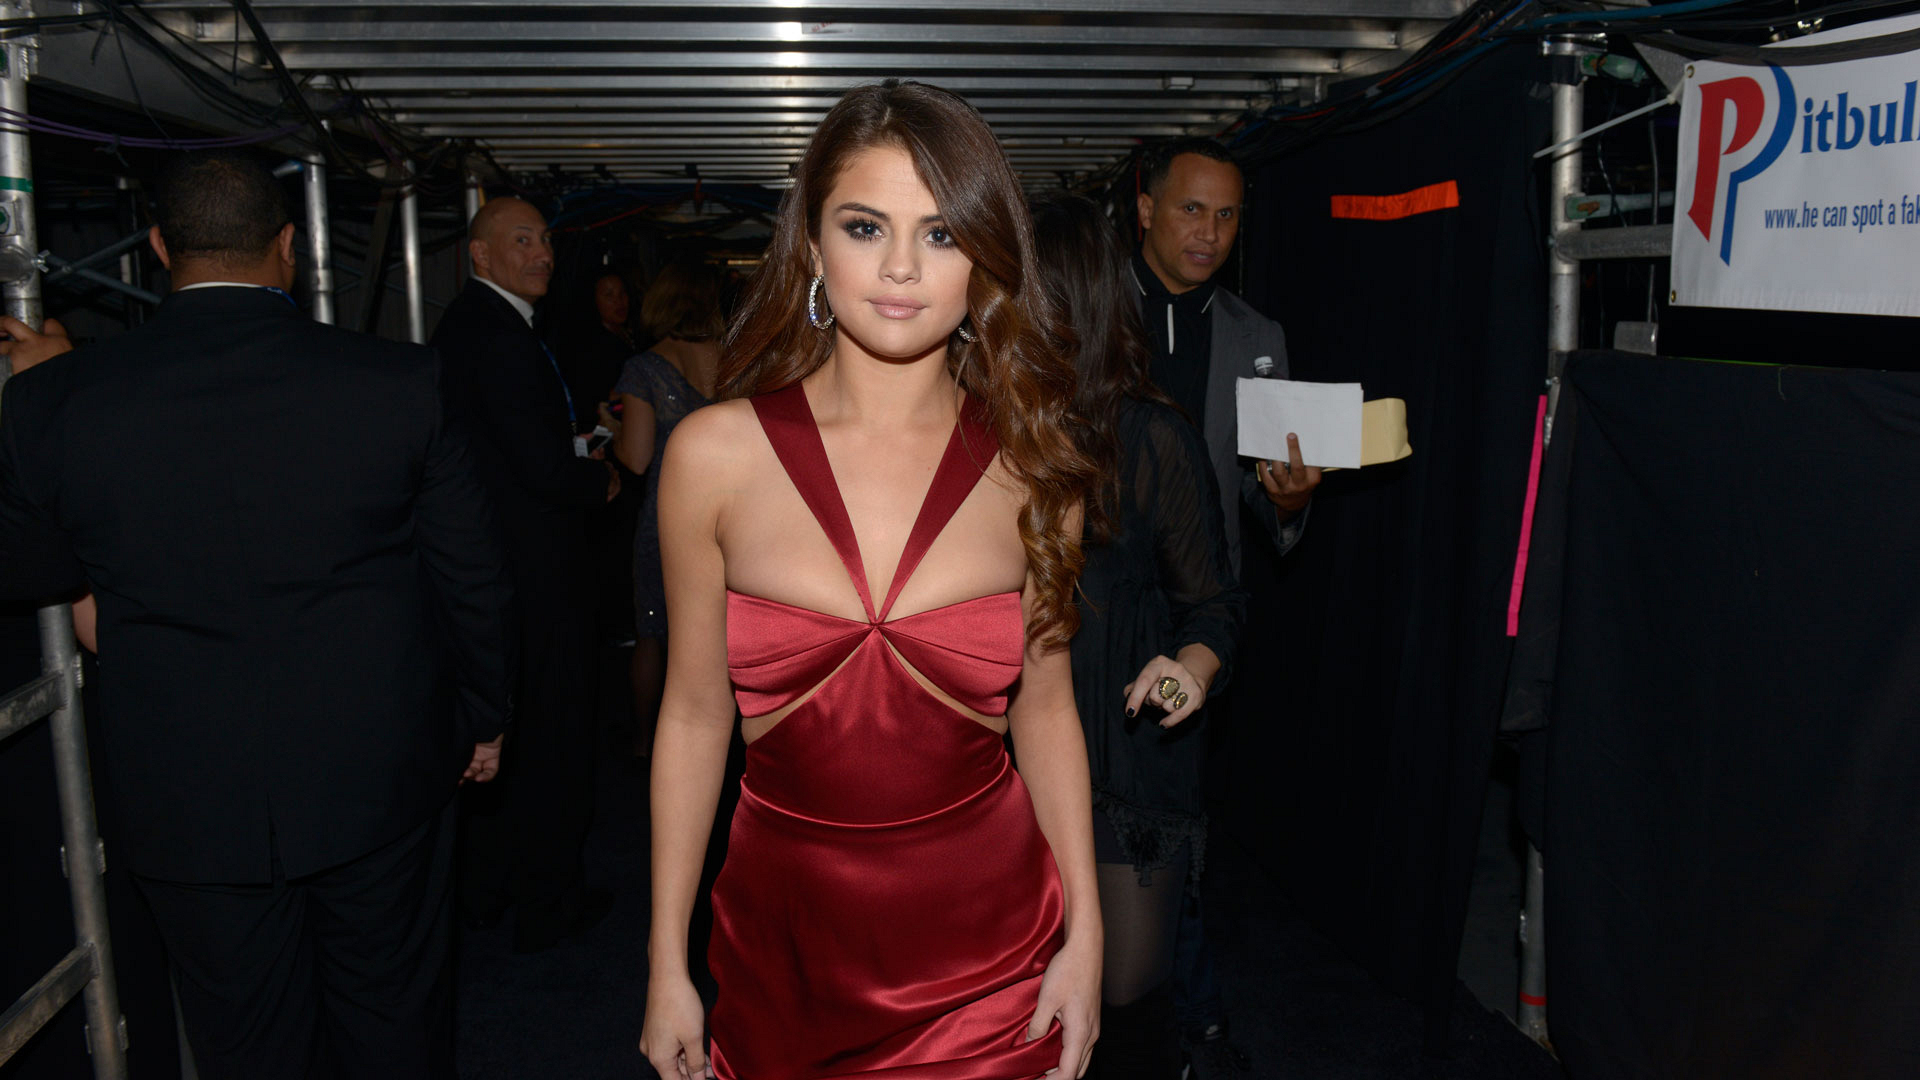 Selena Gomez struts her stuff in a sexy, red dress